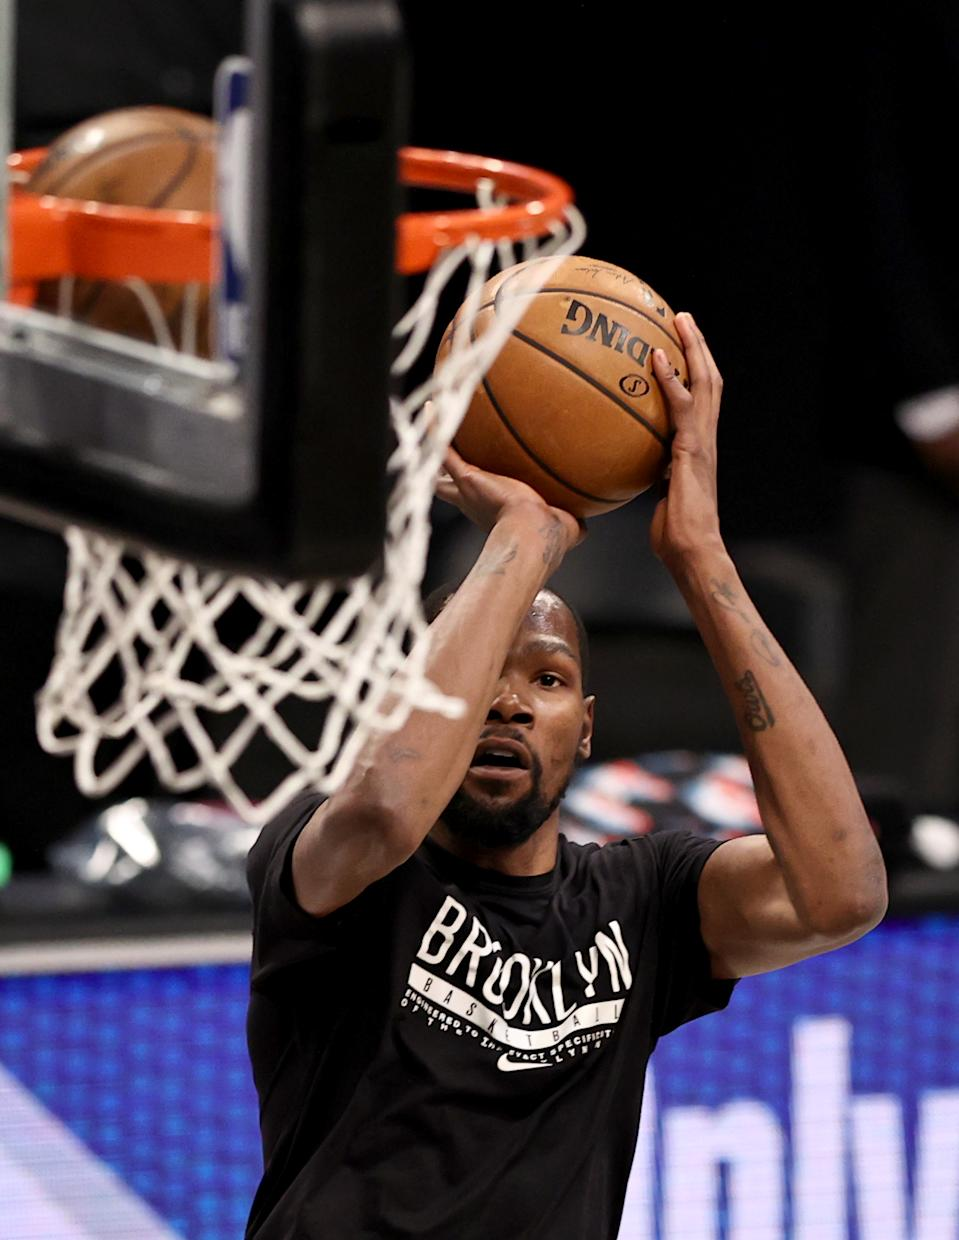 NEW YORK, NEW YORK - APRIL 07:  Kevin Durant #7 of the Brooklyn Nets warms up before the game against the New Orleans Pelicans at Barclays Center on April 07, 2021 in New York City.NOTE TO USER: User expressly acknowledges and agrees that, by downloading and or using this photograph, User is consenting to the terms and conditions of the Getty Images License Agreement. (Photo by Elsa/Getty Images)